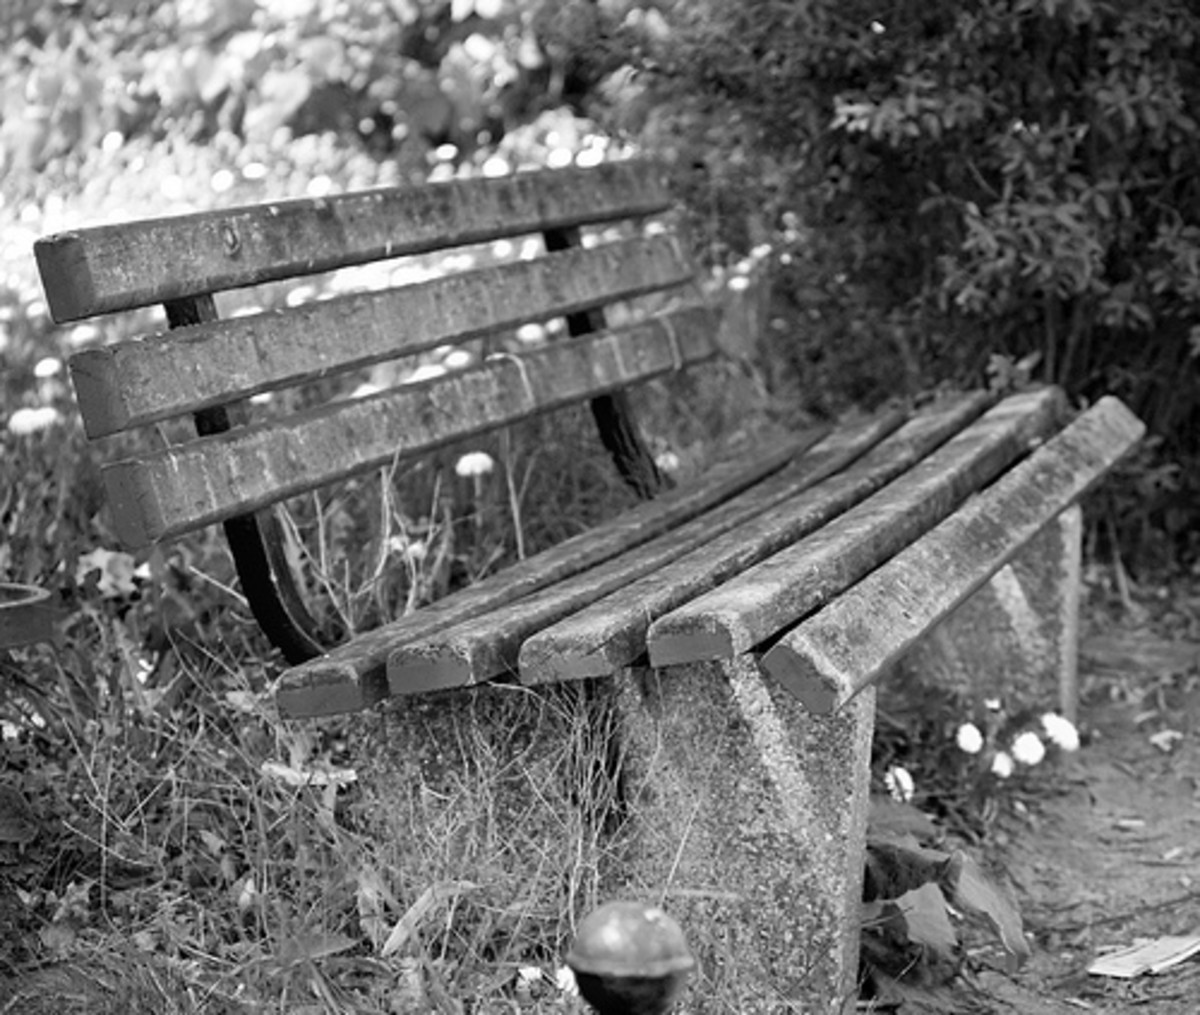 This black and white photo may produce uninteresting image if shot in color